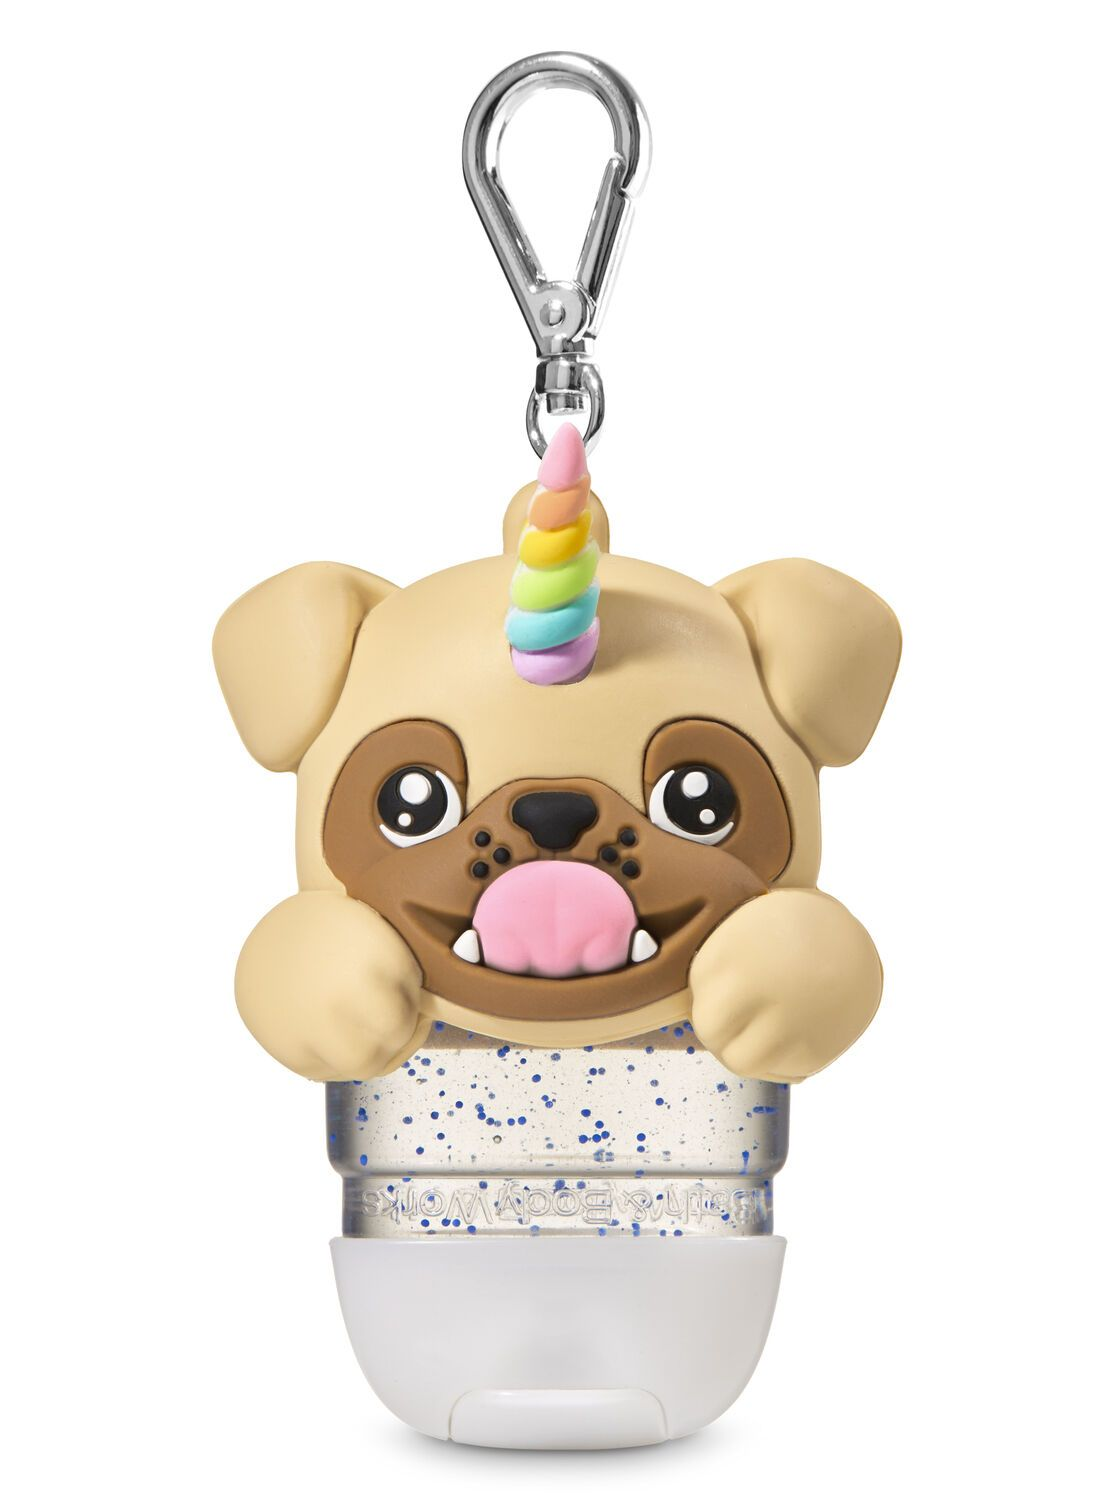 Pugicorn Light Up Pocketbac Holder Hand Sanitizer Holder Bath